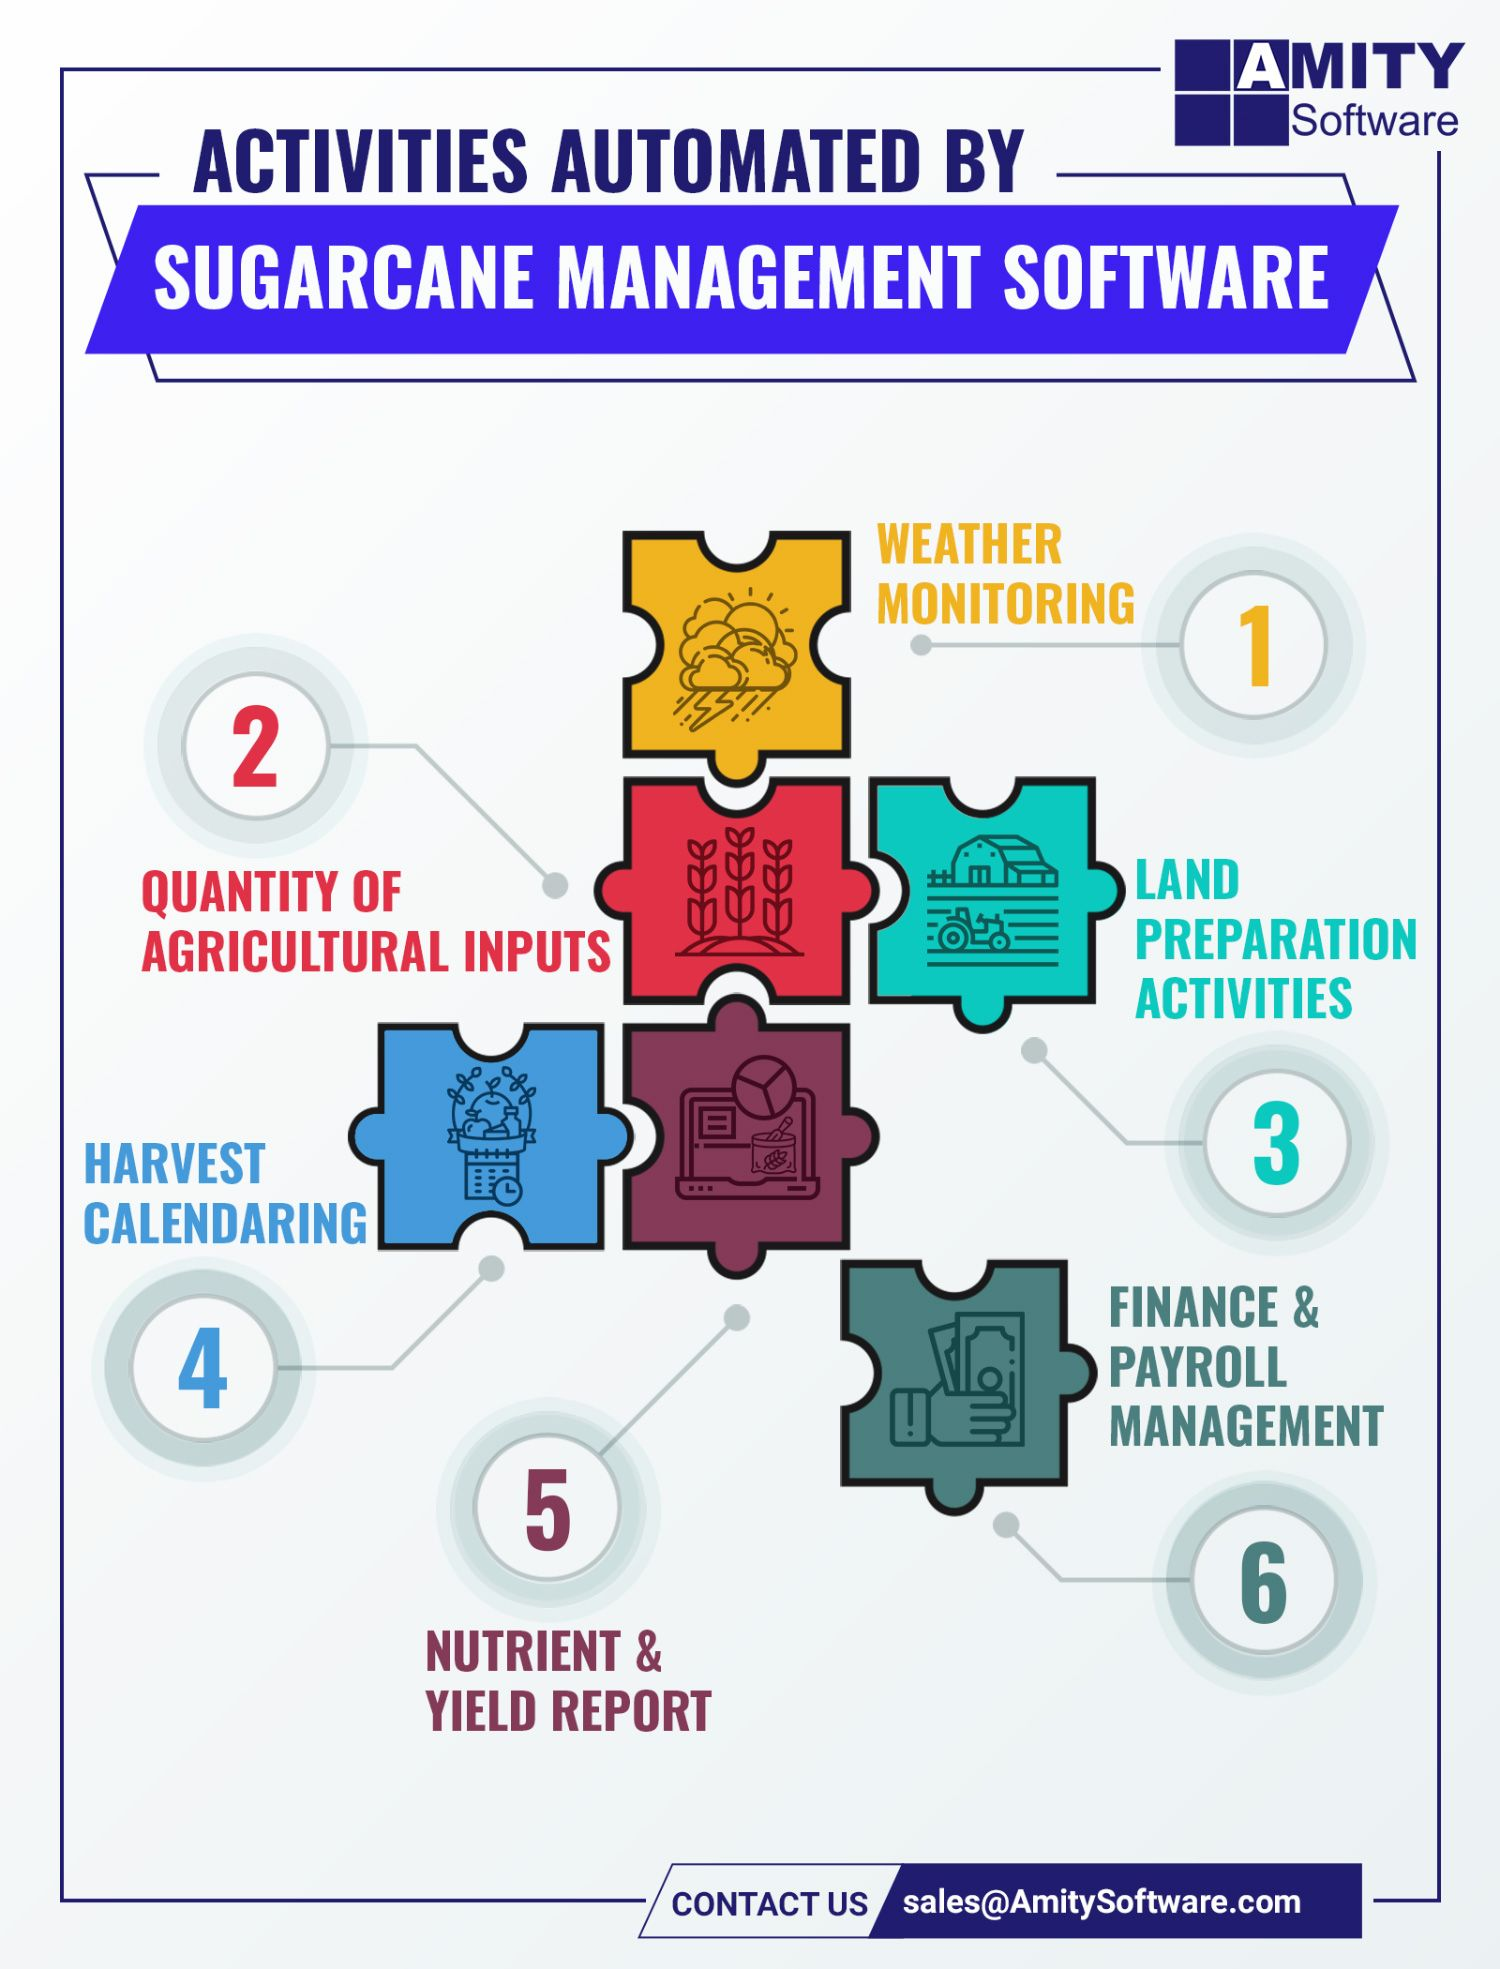 Amity Software S Sugarcane Management Software Is Used For The End